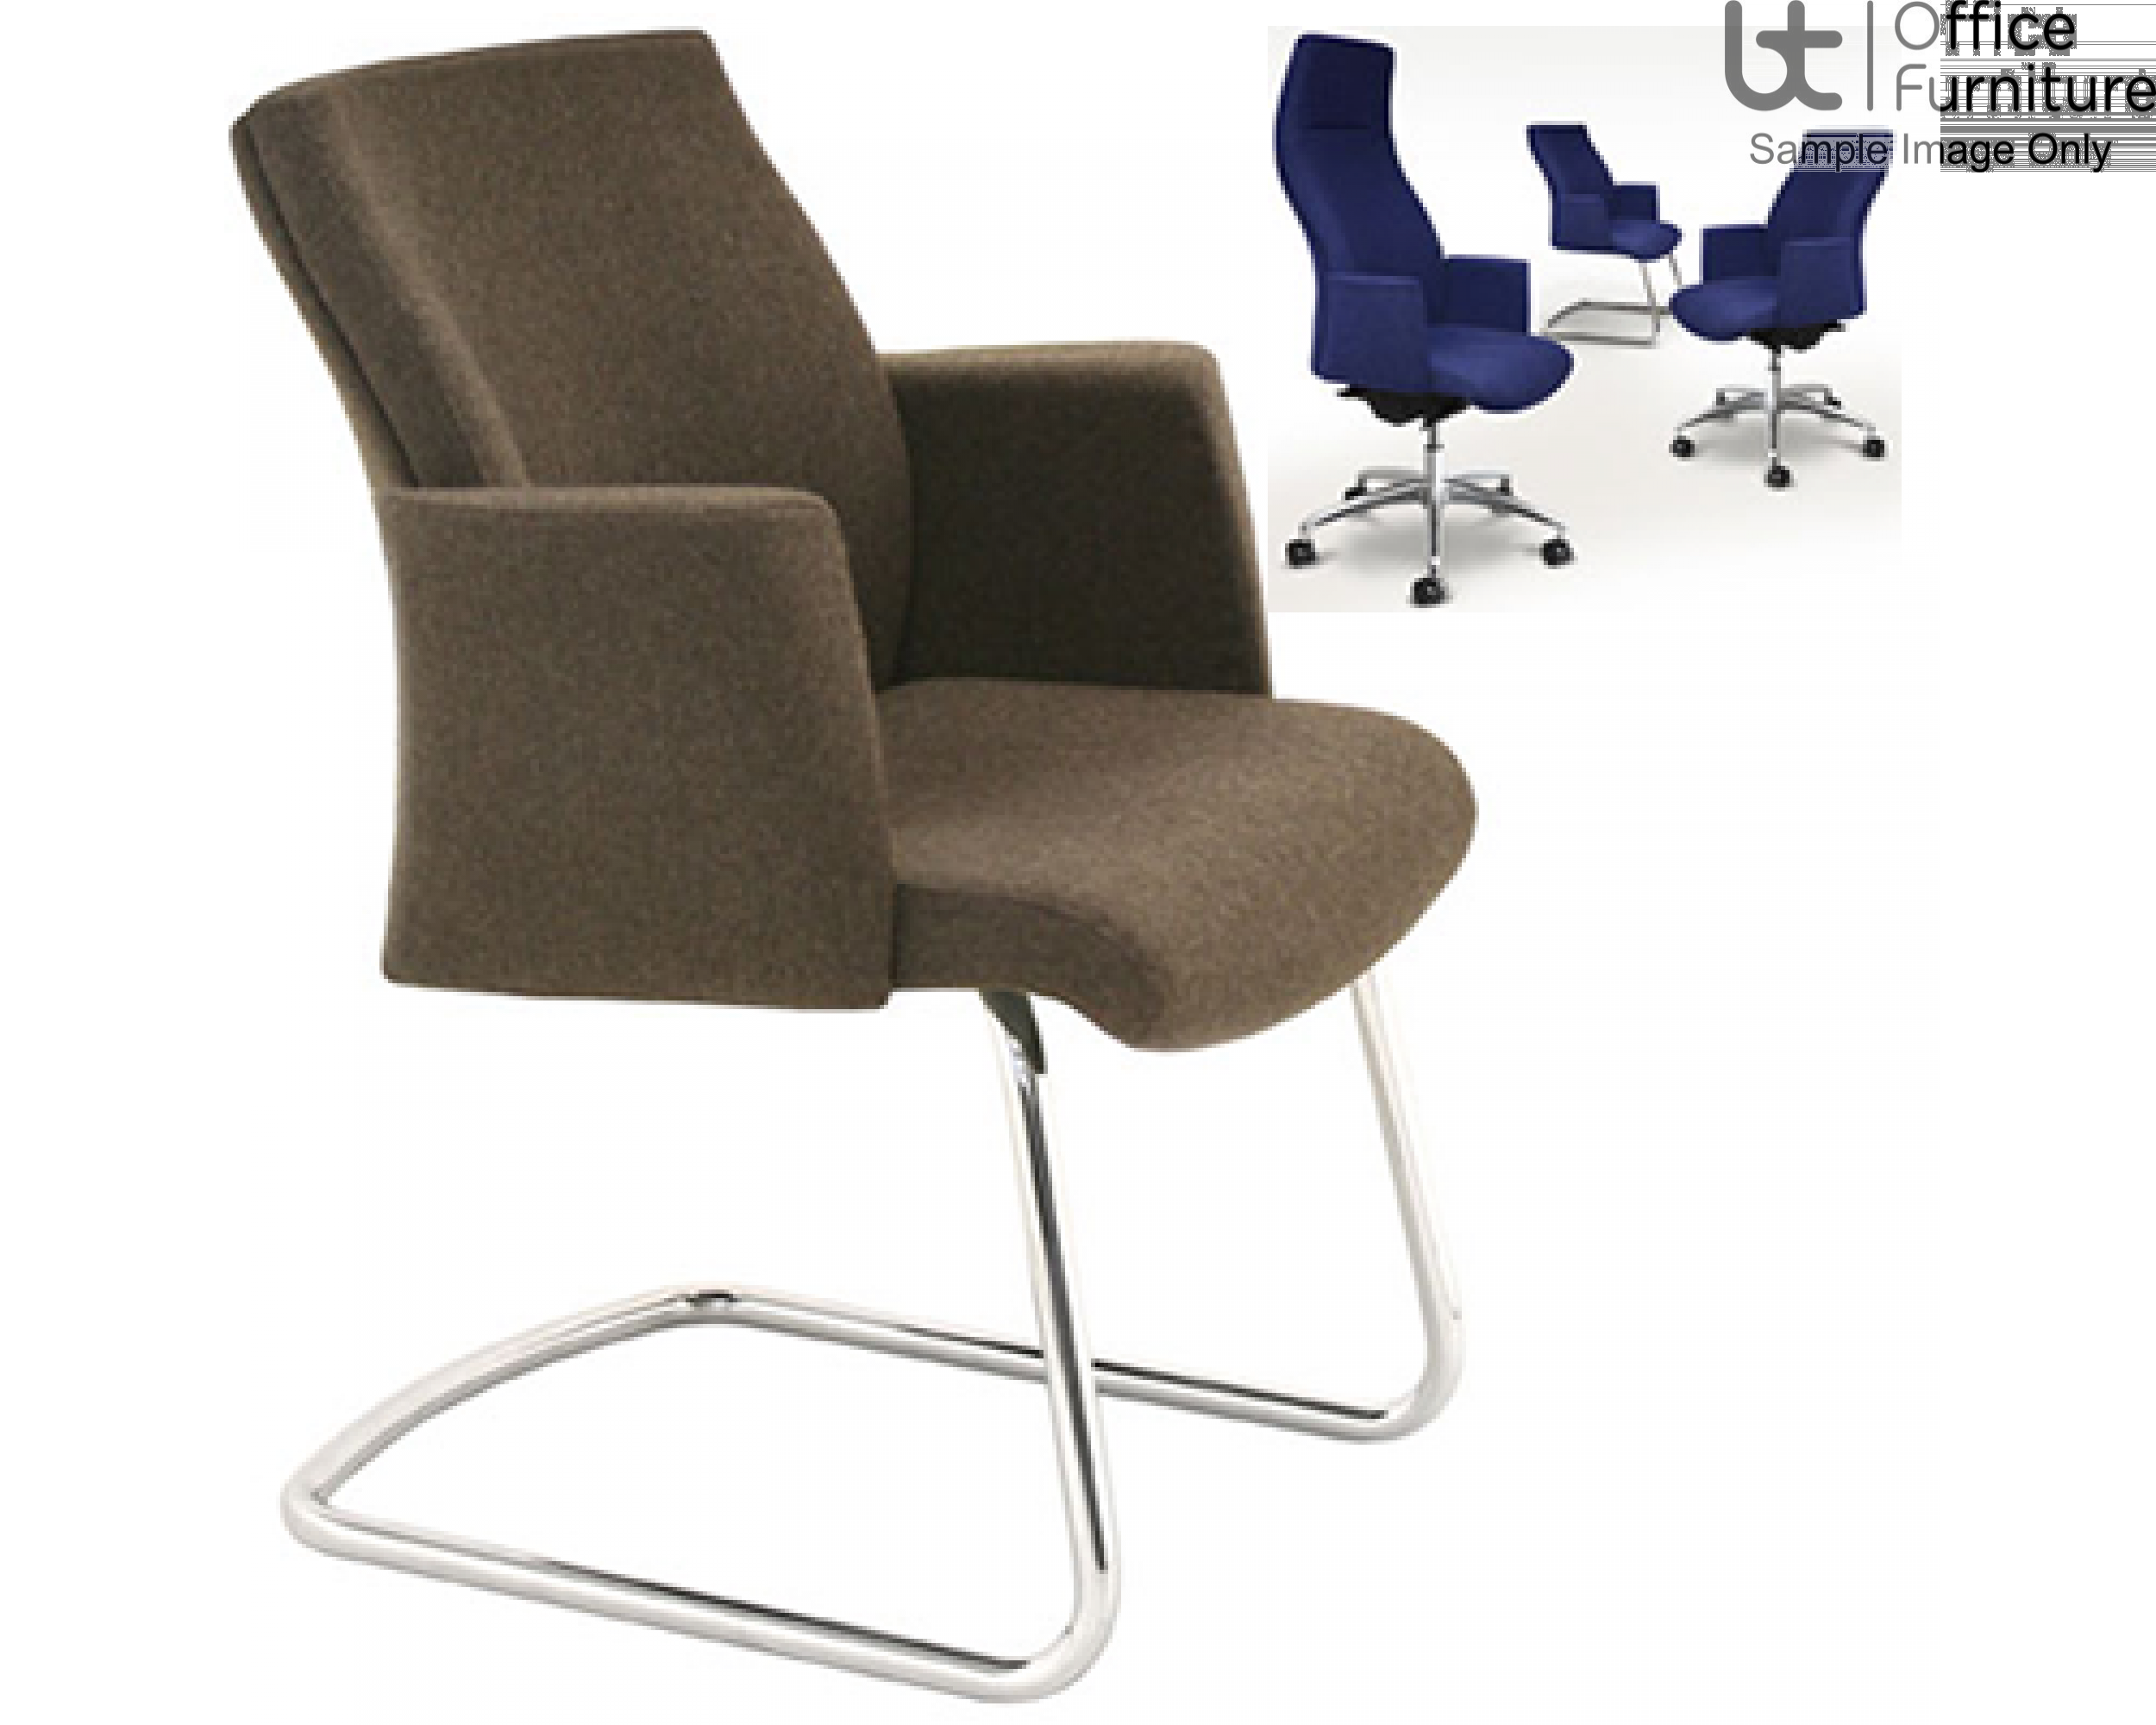 Verco Executive Seating - Verve2 Low Back Cantilever Visitors Chair with Arms